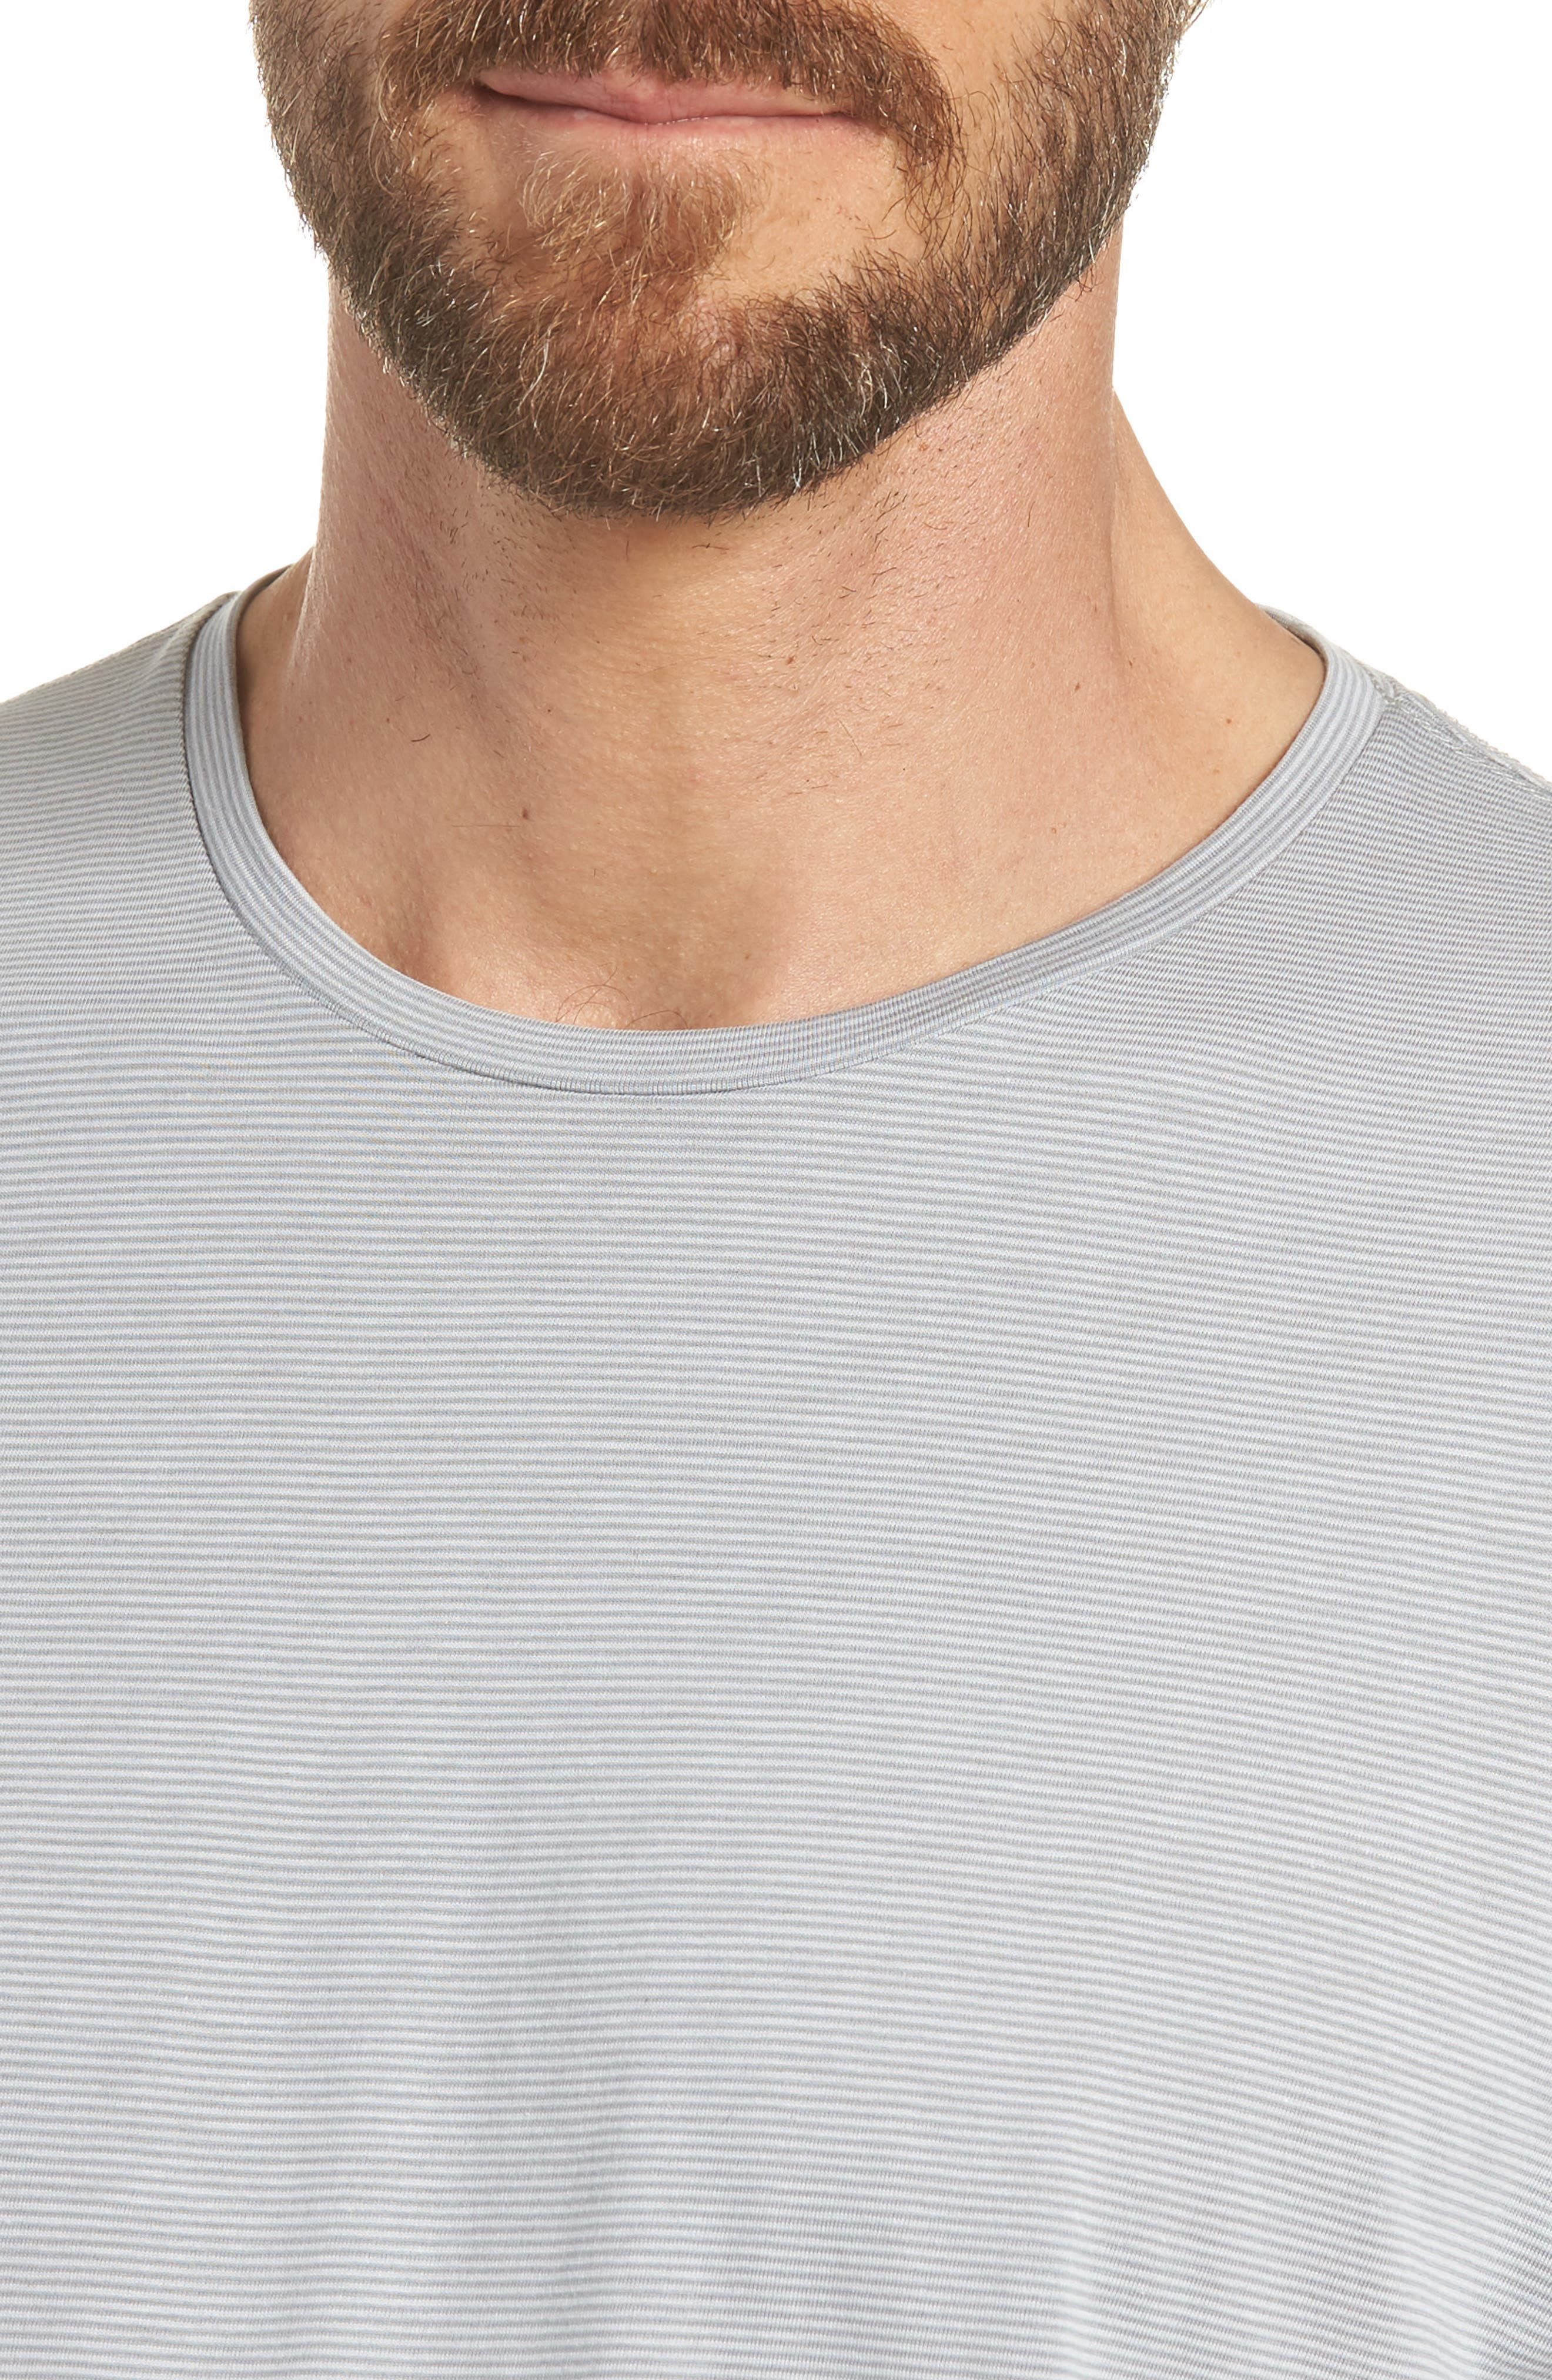 Refined Slim Fit T-Shirt,                             Alternate thumbnail 4, color,                             Echo Sterling